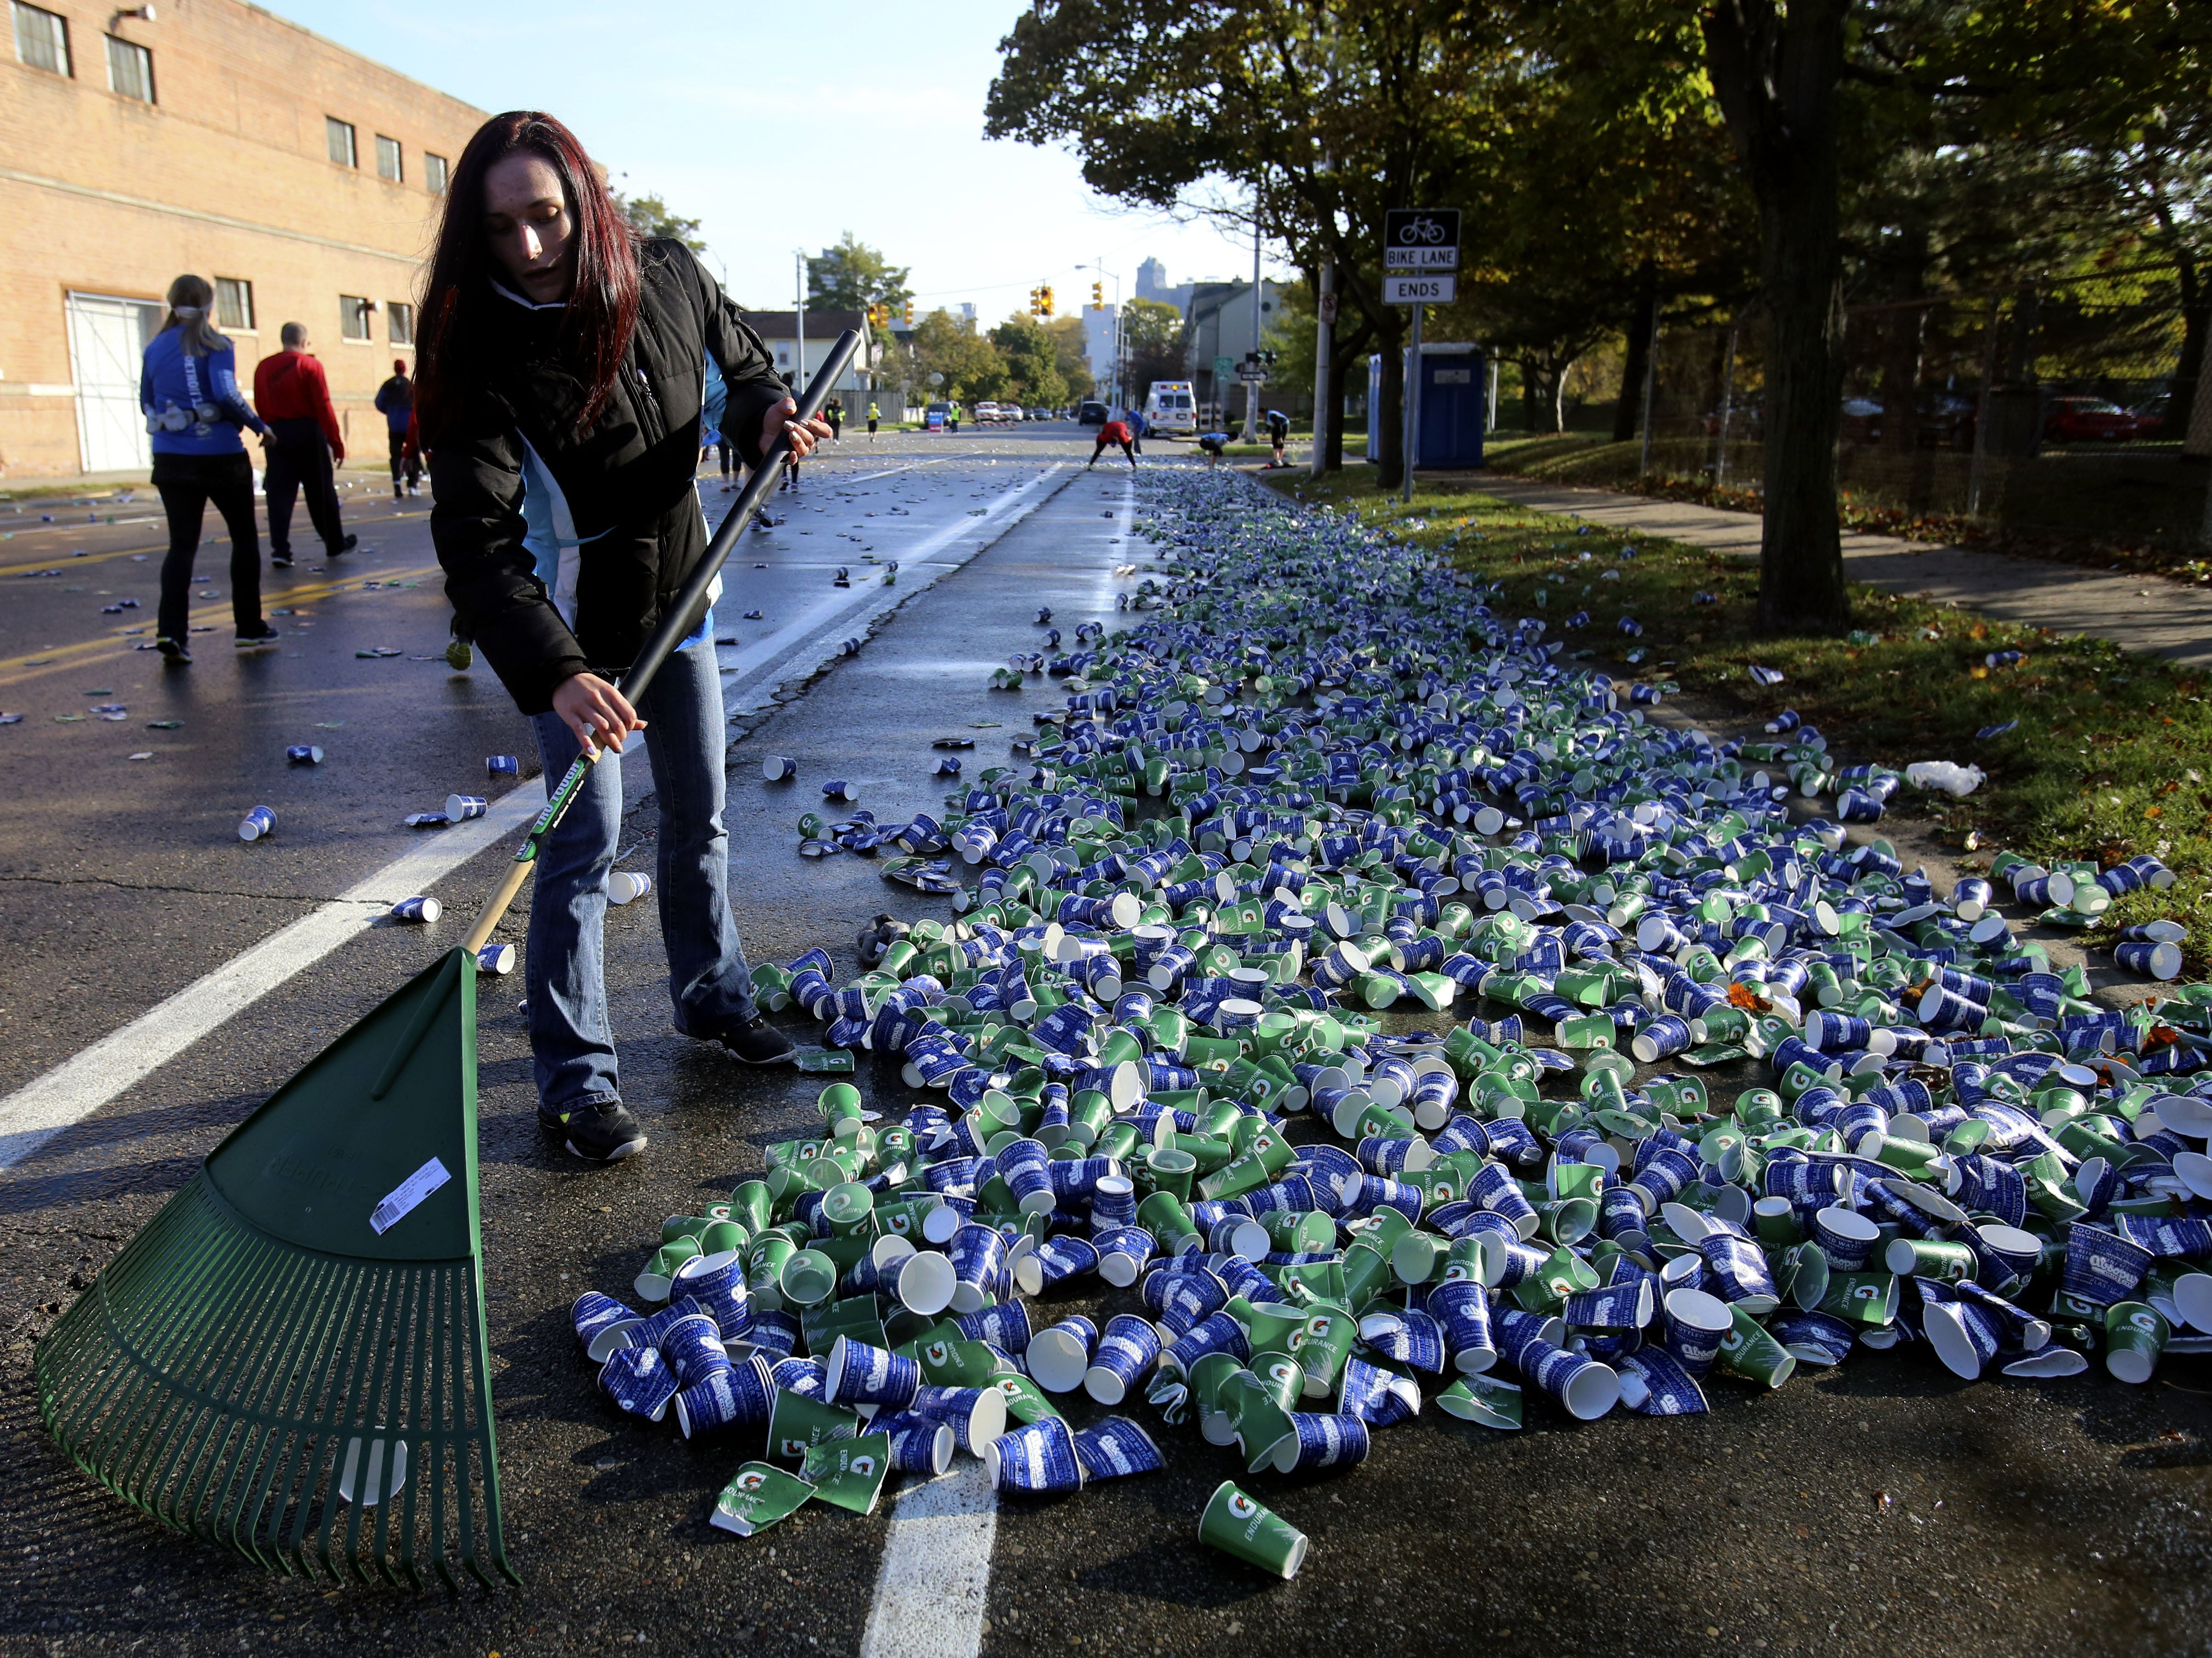 Andrea Mitrache, 19, of Sterling Heights cleans up discarded water cups during the 36th Annual Detroit Free Press/Talmer Bank Marathon in Detroit on Sunday, Oct. 20, 2013.